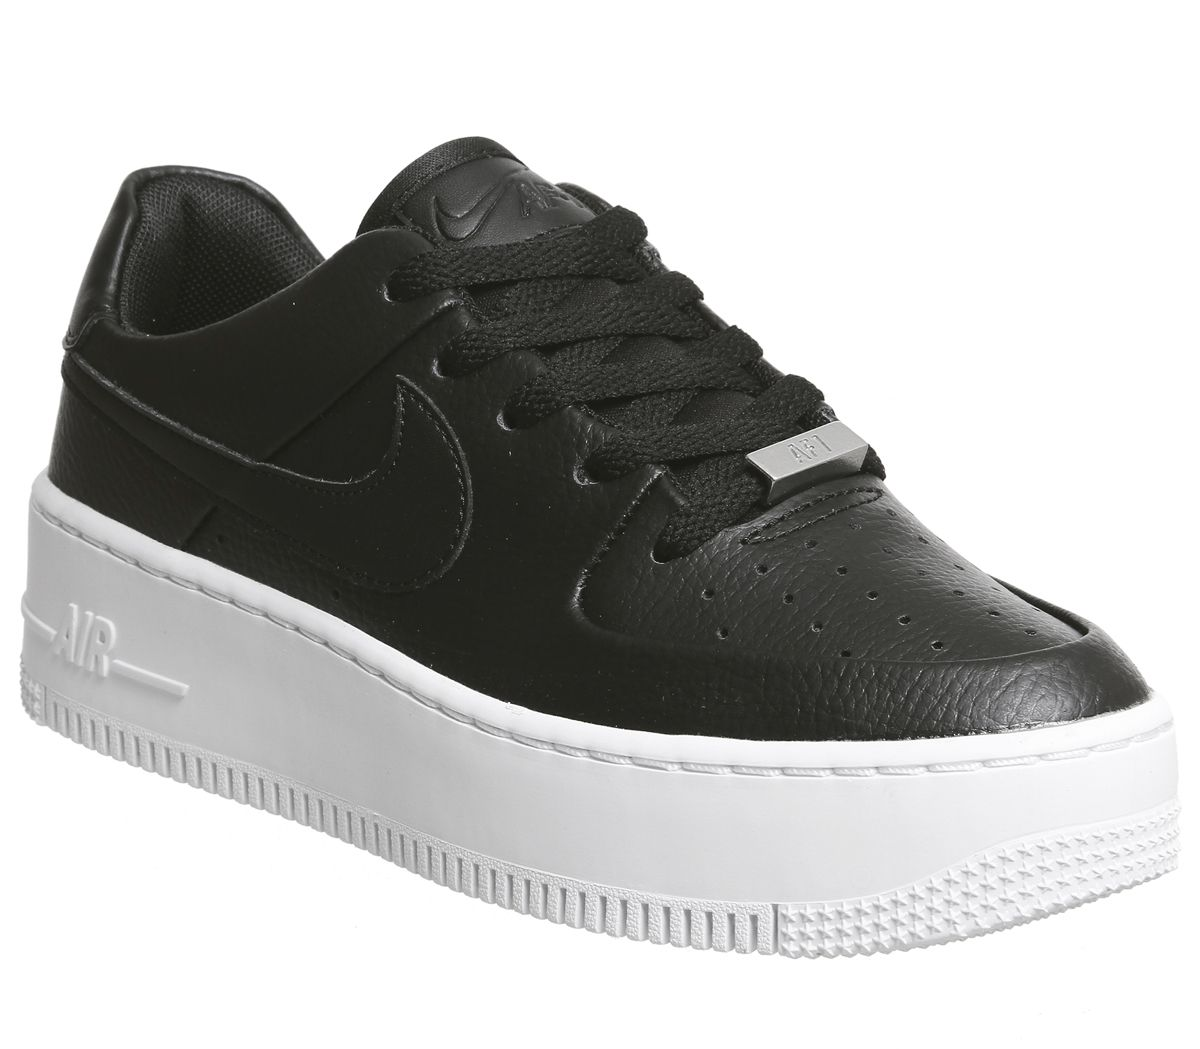 official photos 6caea ed856 Nike Air Force 1 Sage Trainers Black Black White - Hers trainers